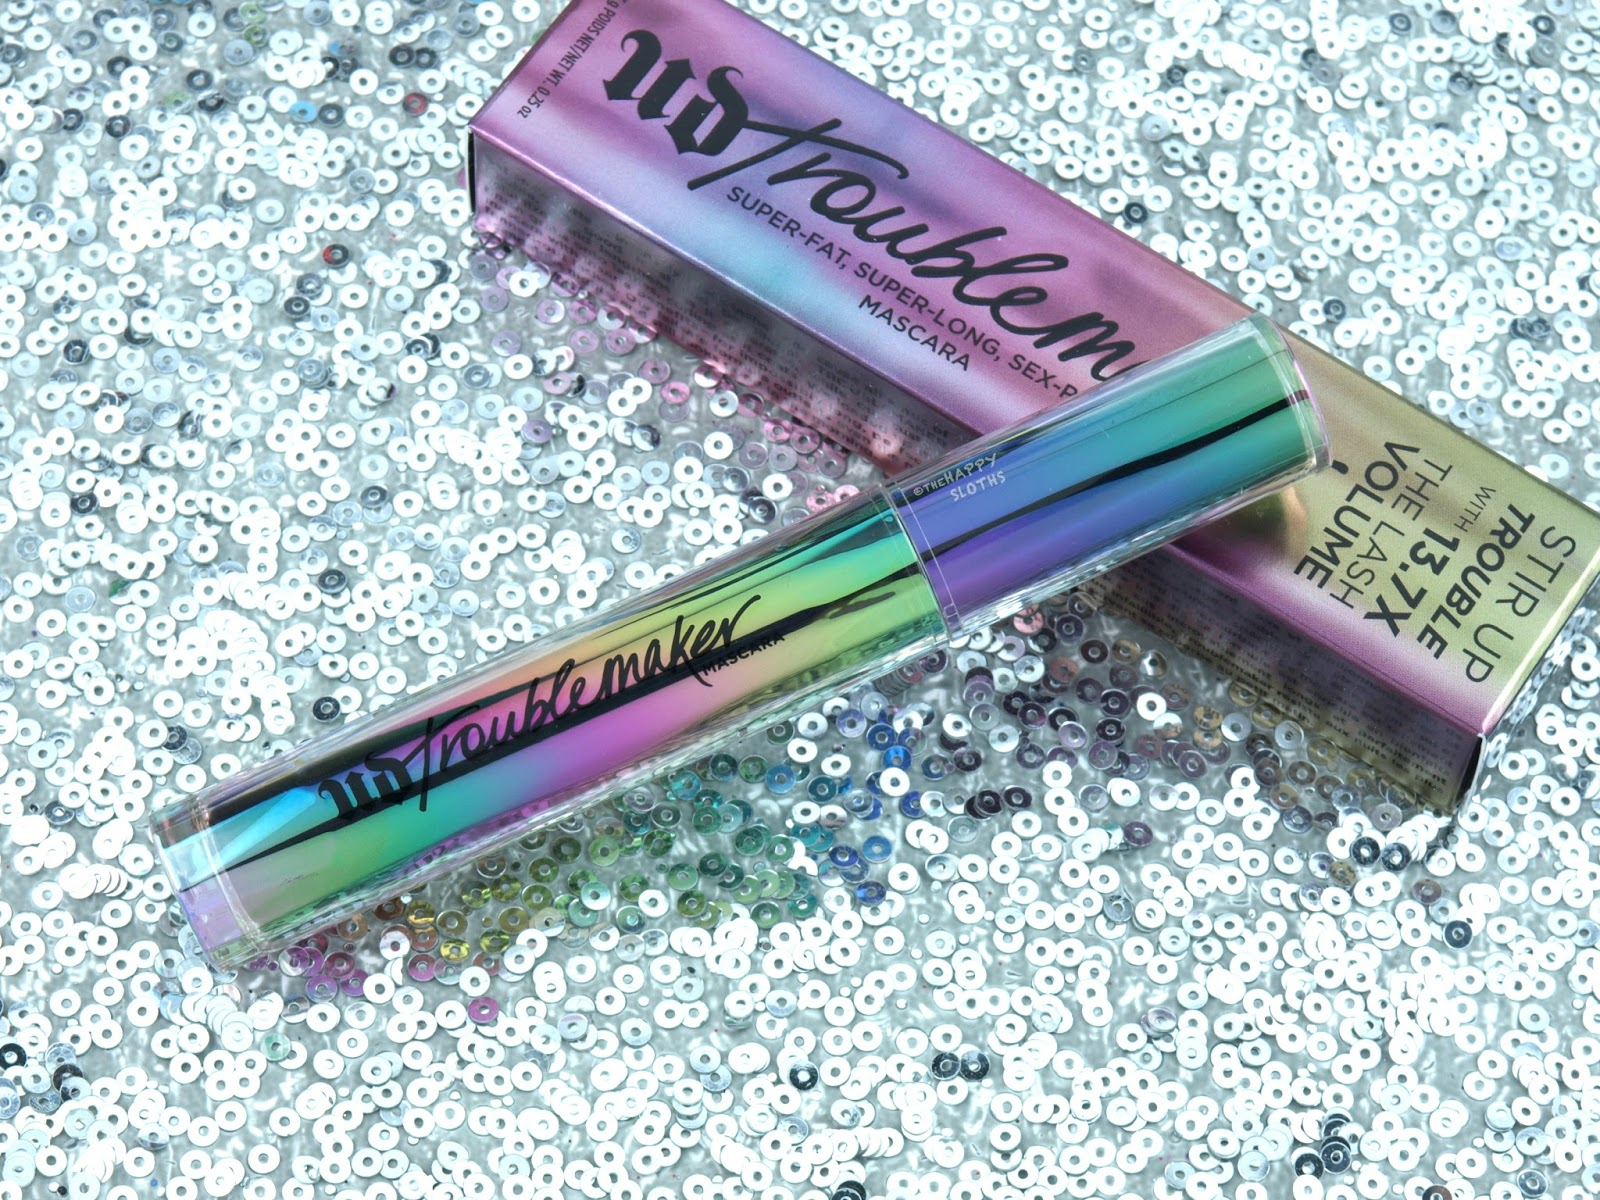 Urban Decay Troublemaker Mascara: Review and Swatches